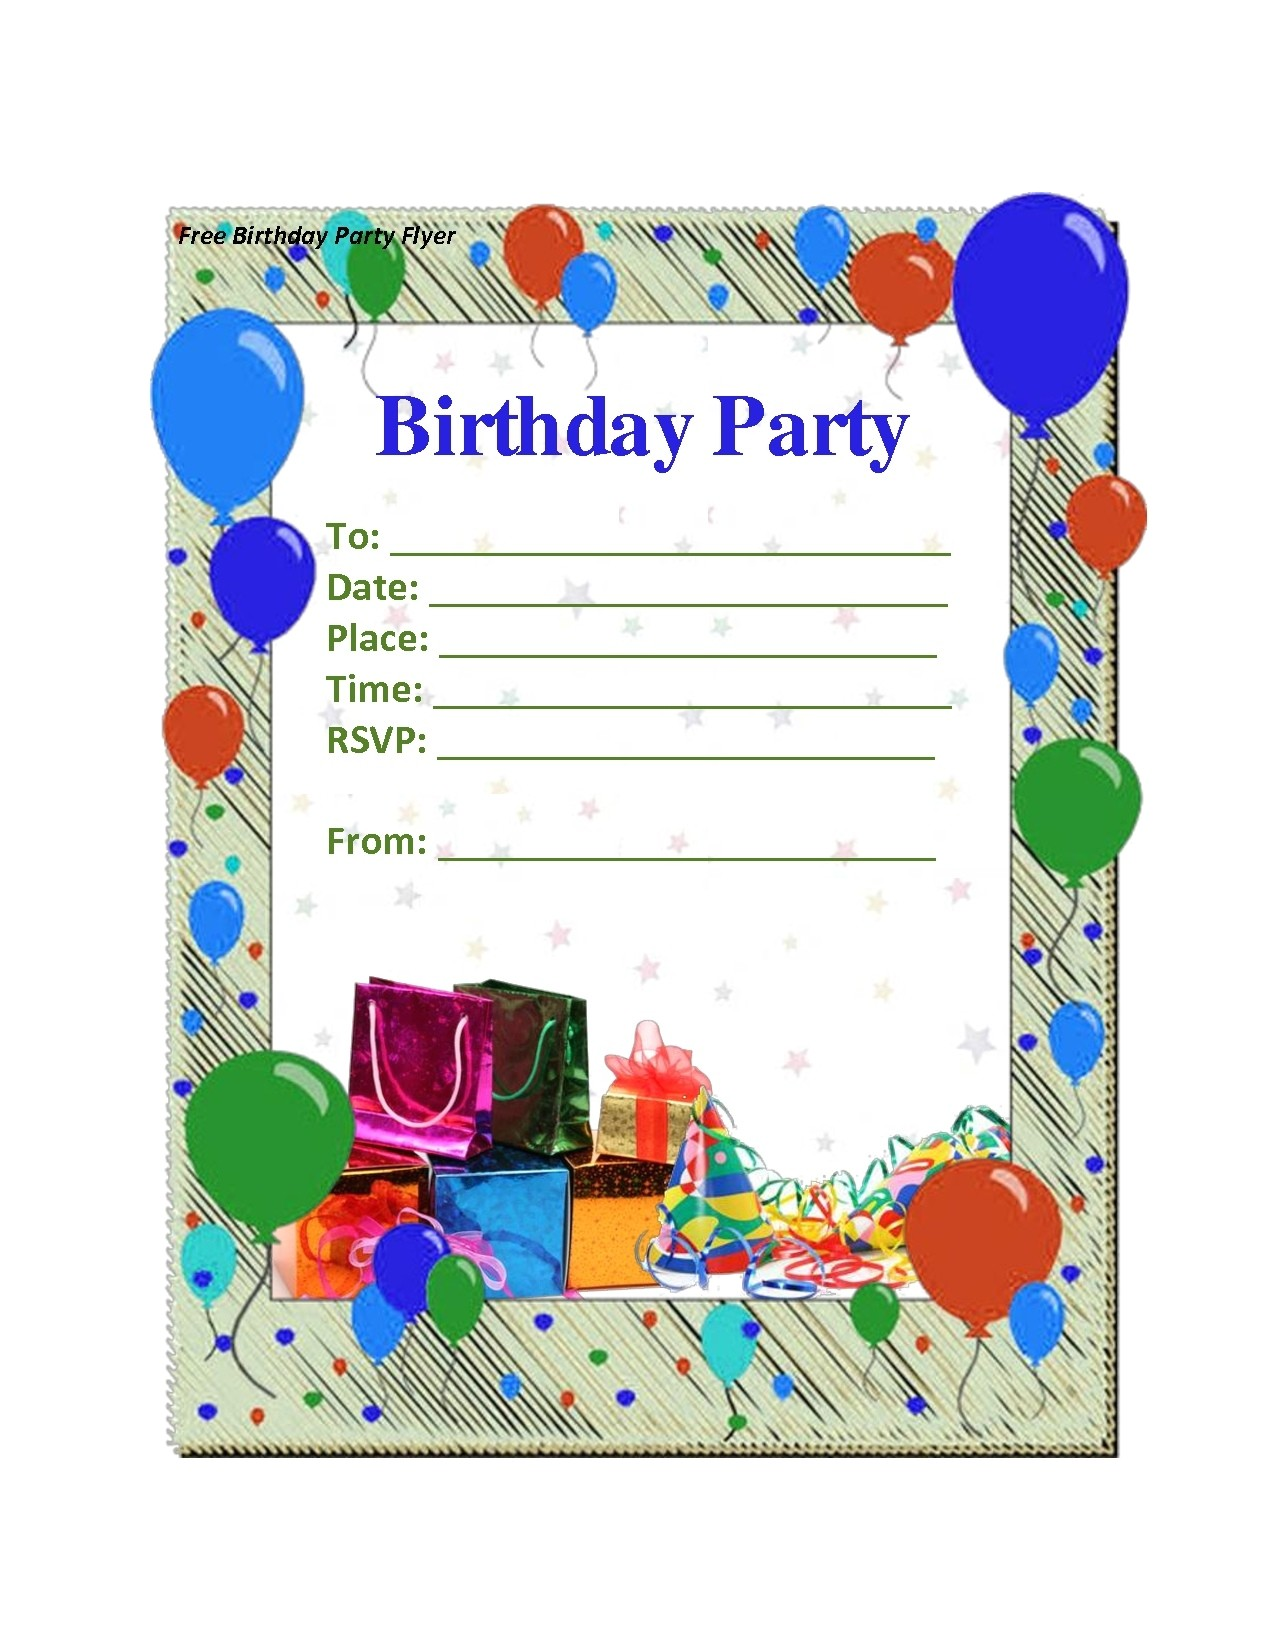 Birthday Postcard Invitations Templates Free Kids Birthday Card Template Resume Builder